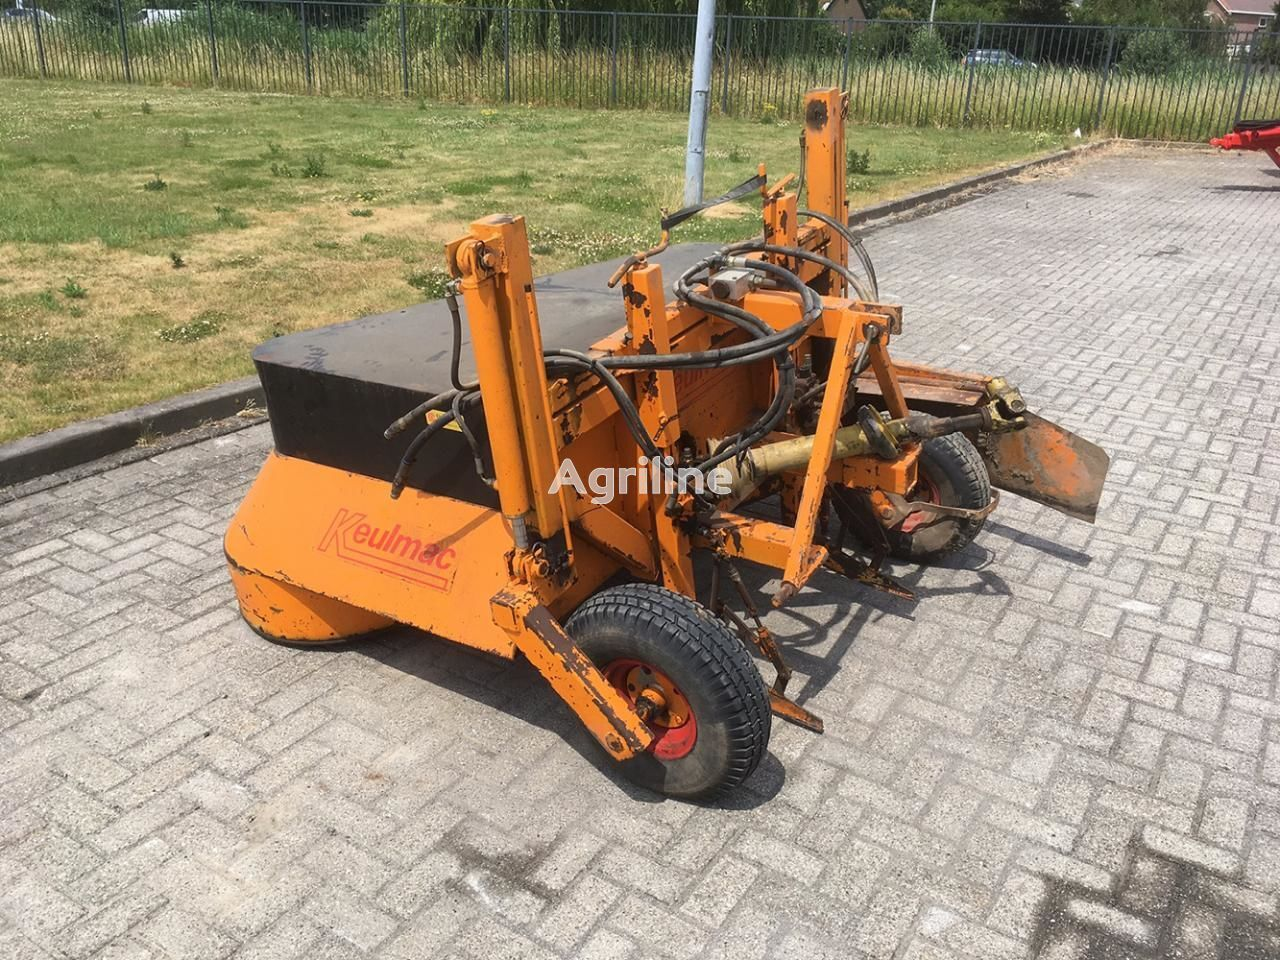 KEULMAC messenklapper carrot harvester